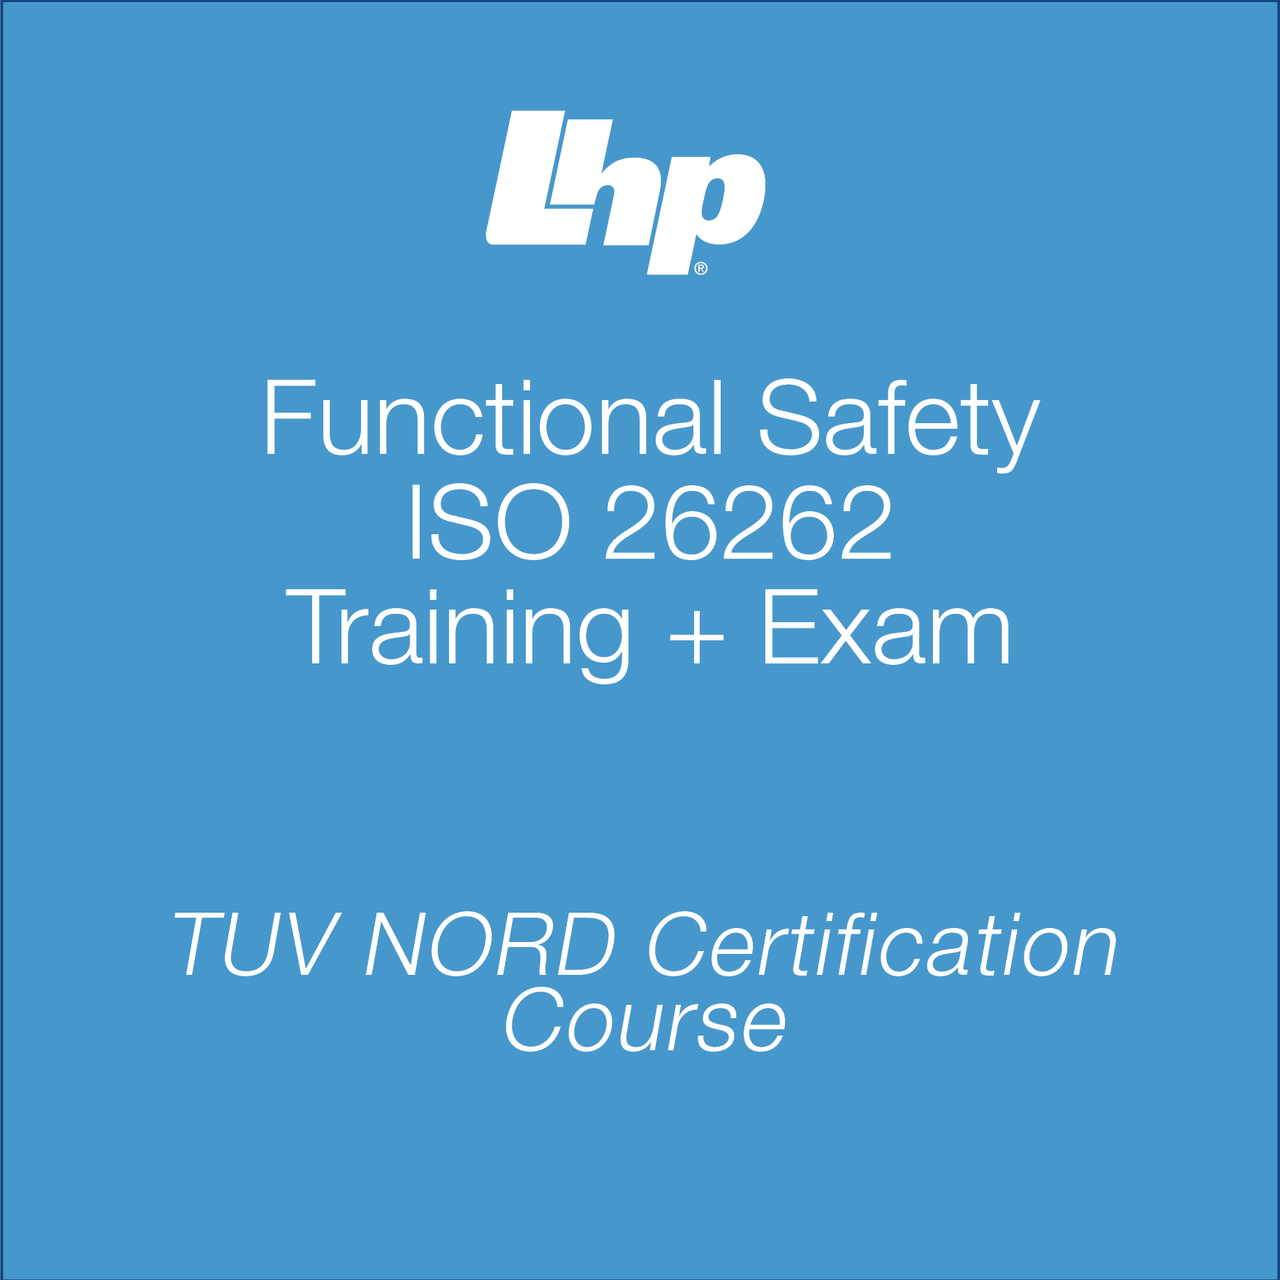 TUV Nord - ISO 26262 Certification - Training + Examination